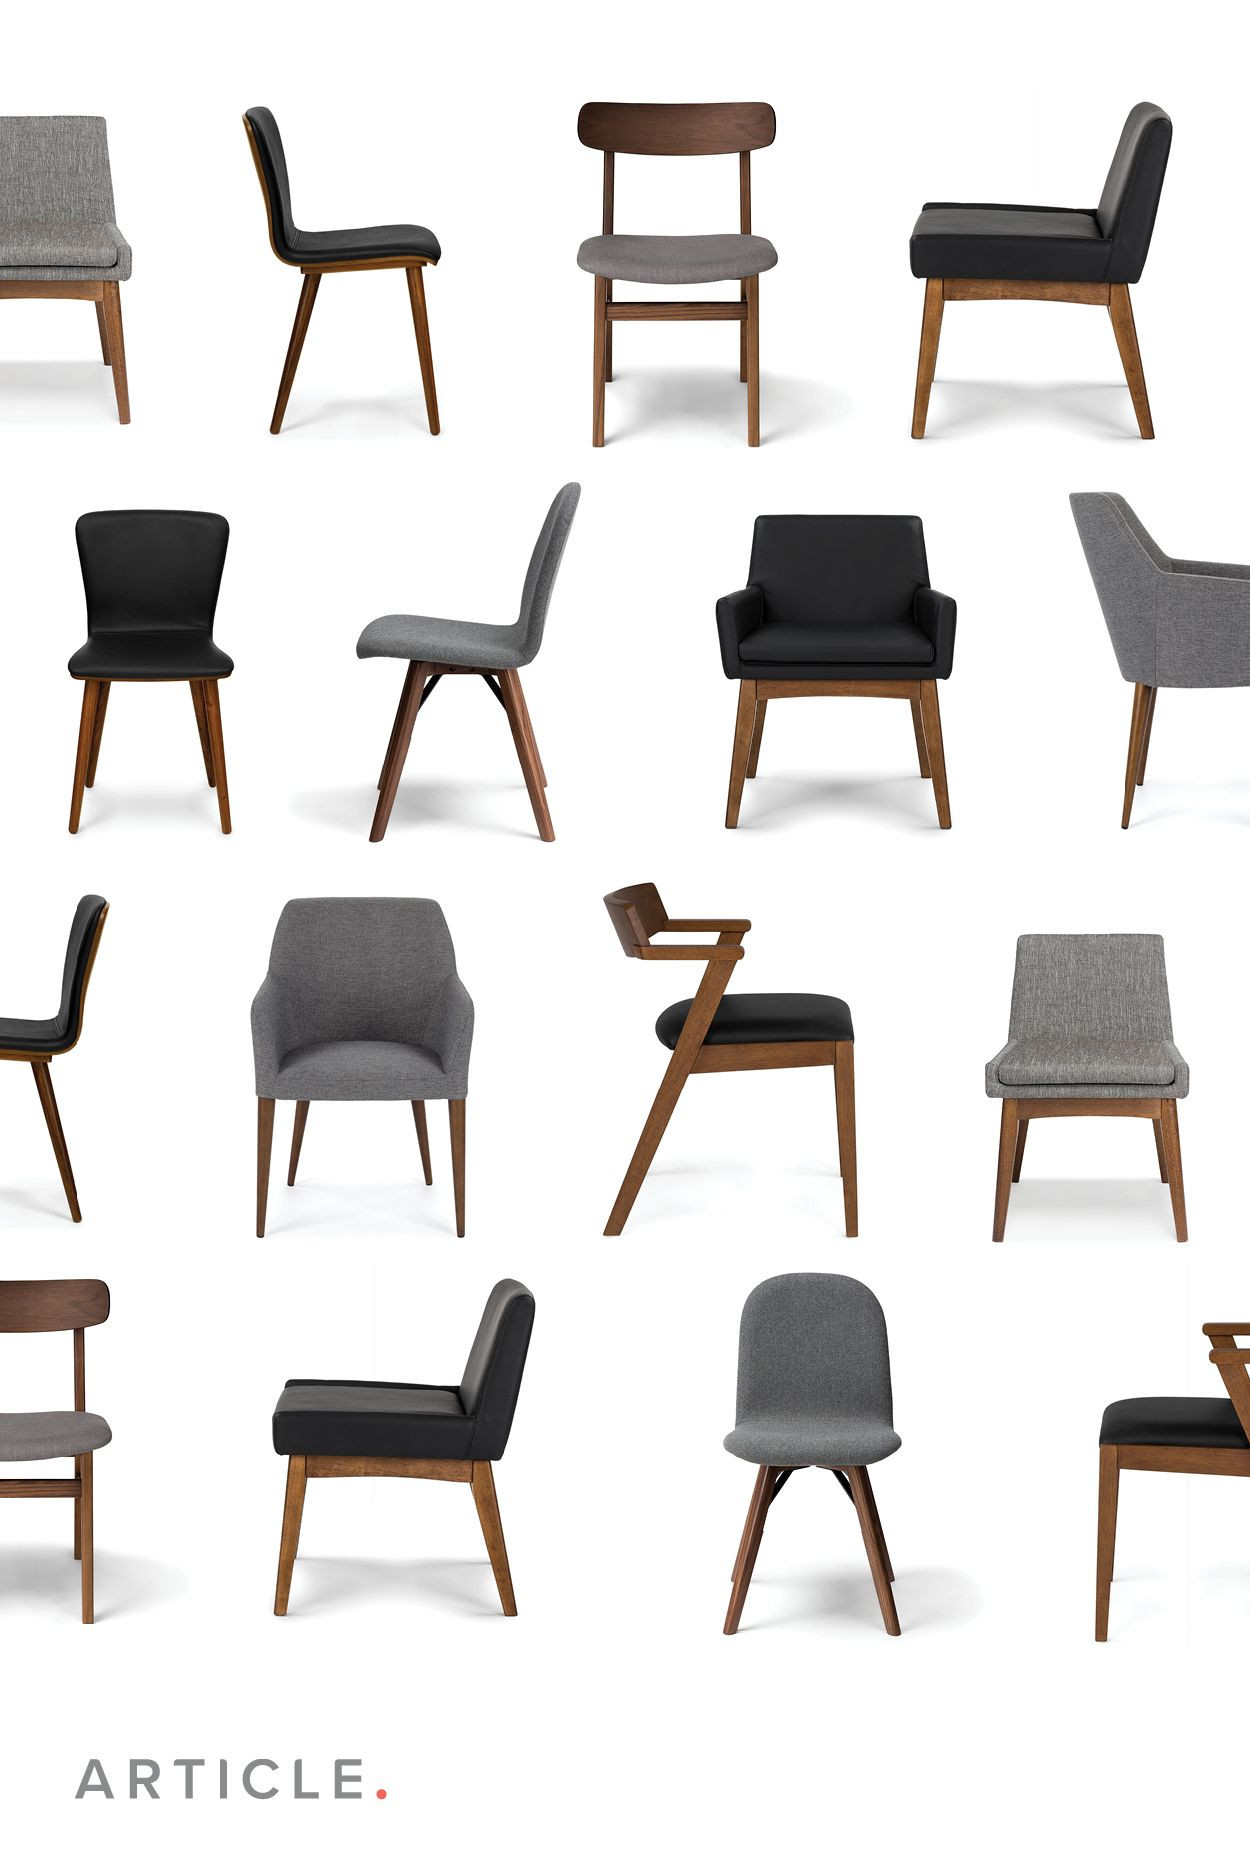 Find The Dining Chair That Fits You And Your Lifestyle Sillas